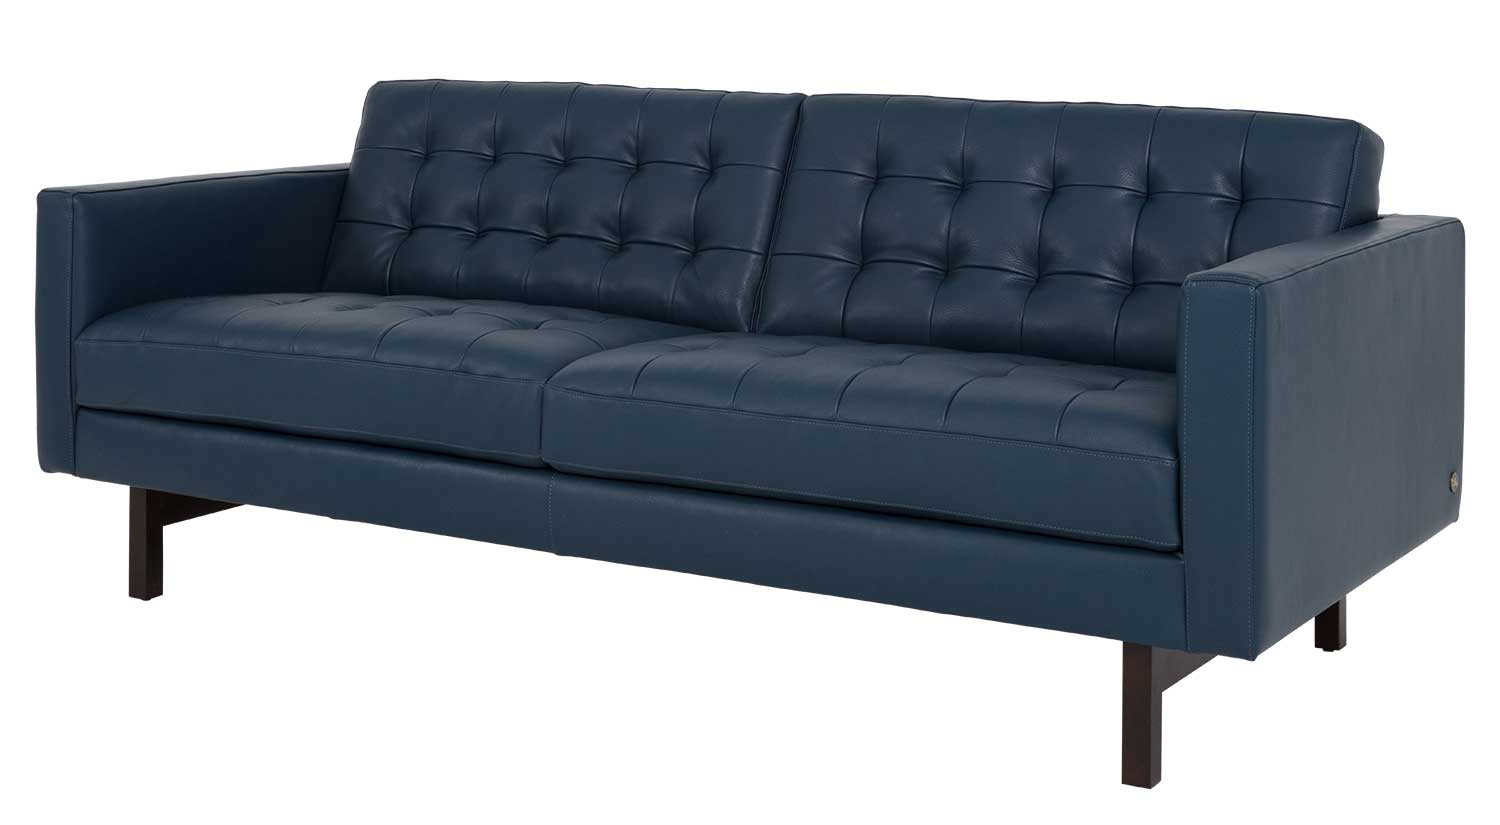 Circle Furniture – Parker Sofa | Designer Sofas Boston | Circle Intended For Parker Sofa Chairs (View 10 of 25)